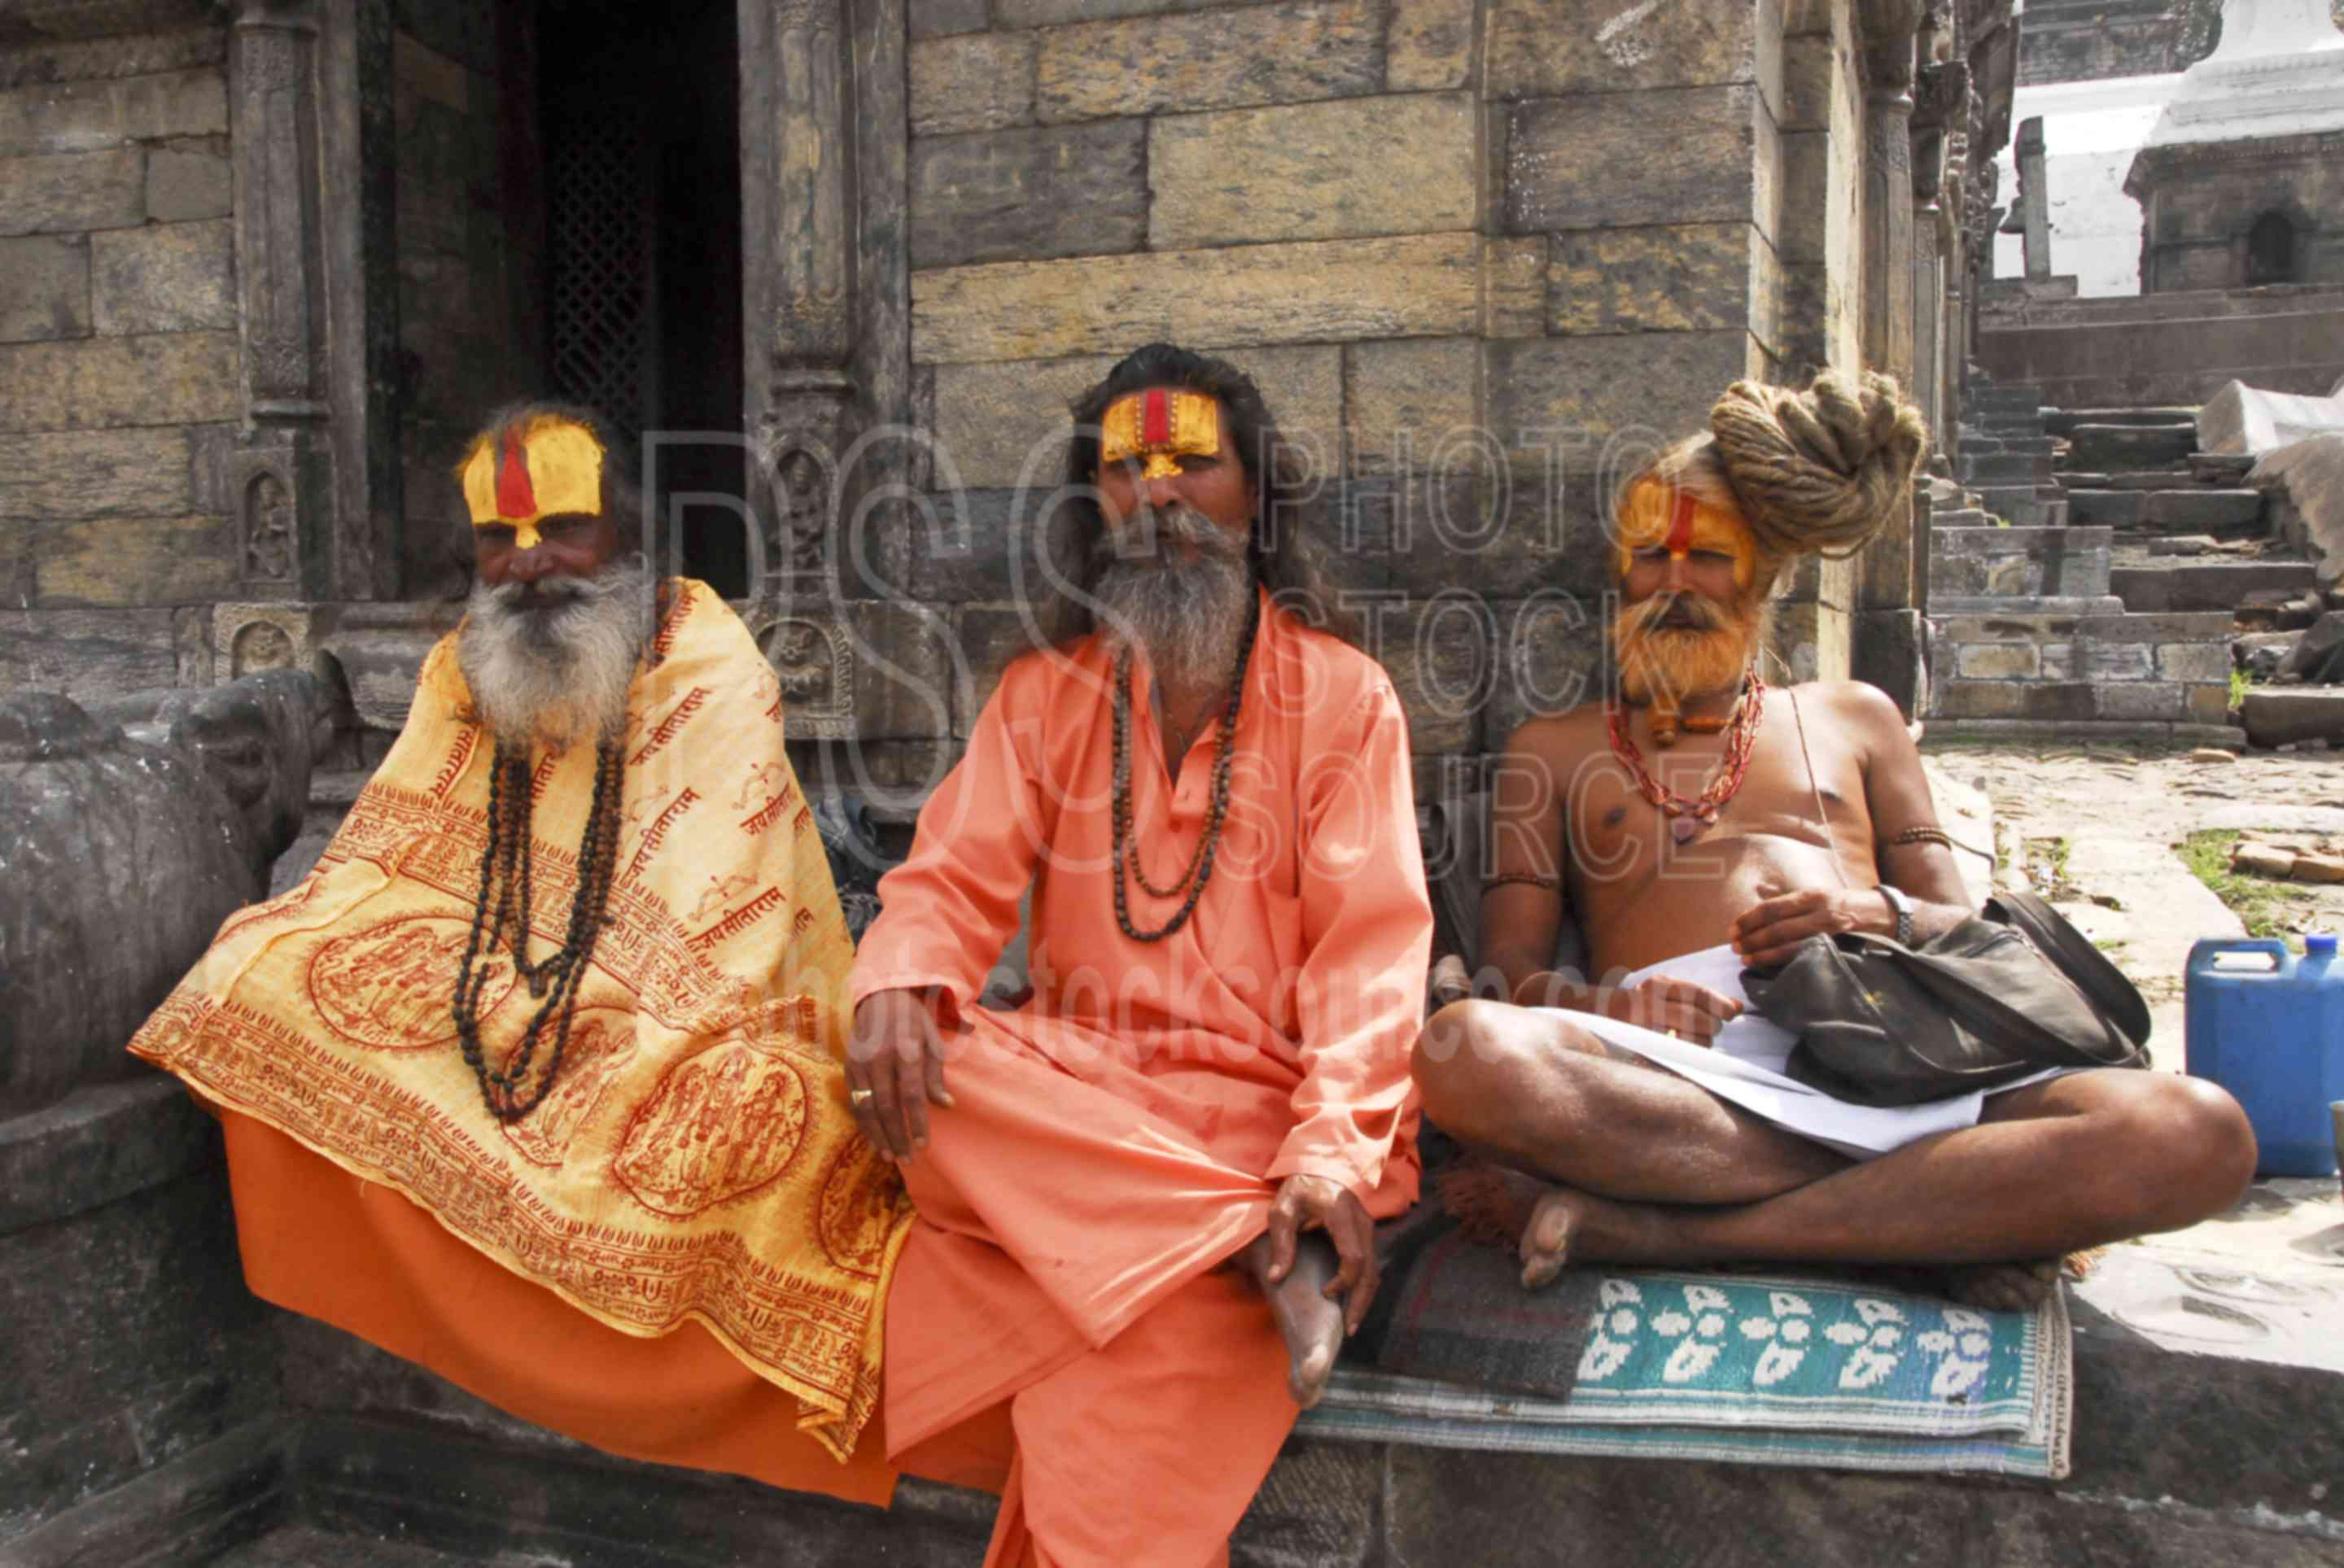 Photo Of Ascetic Yogi Sadhus By Photo Stock Source People